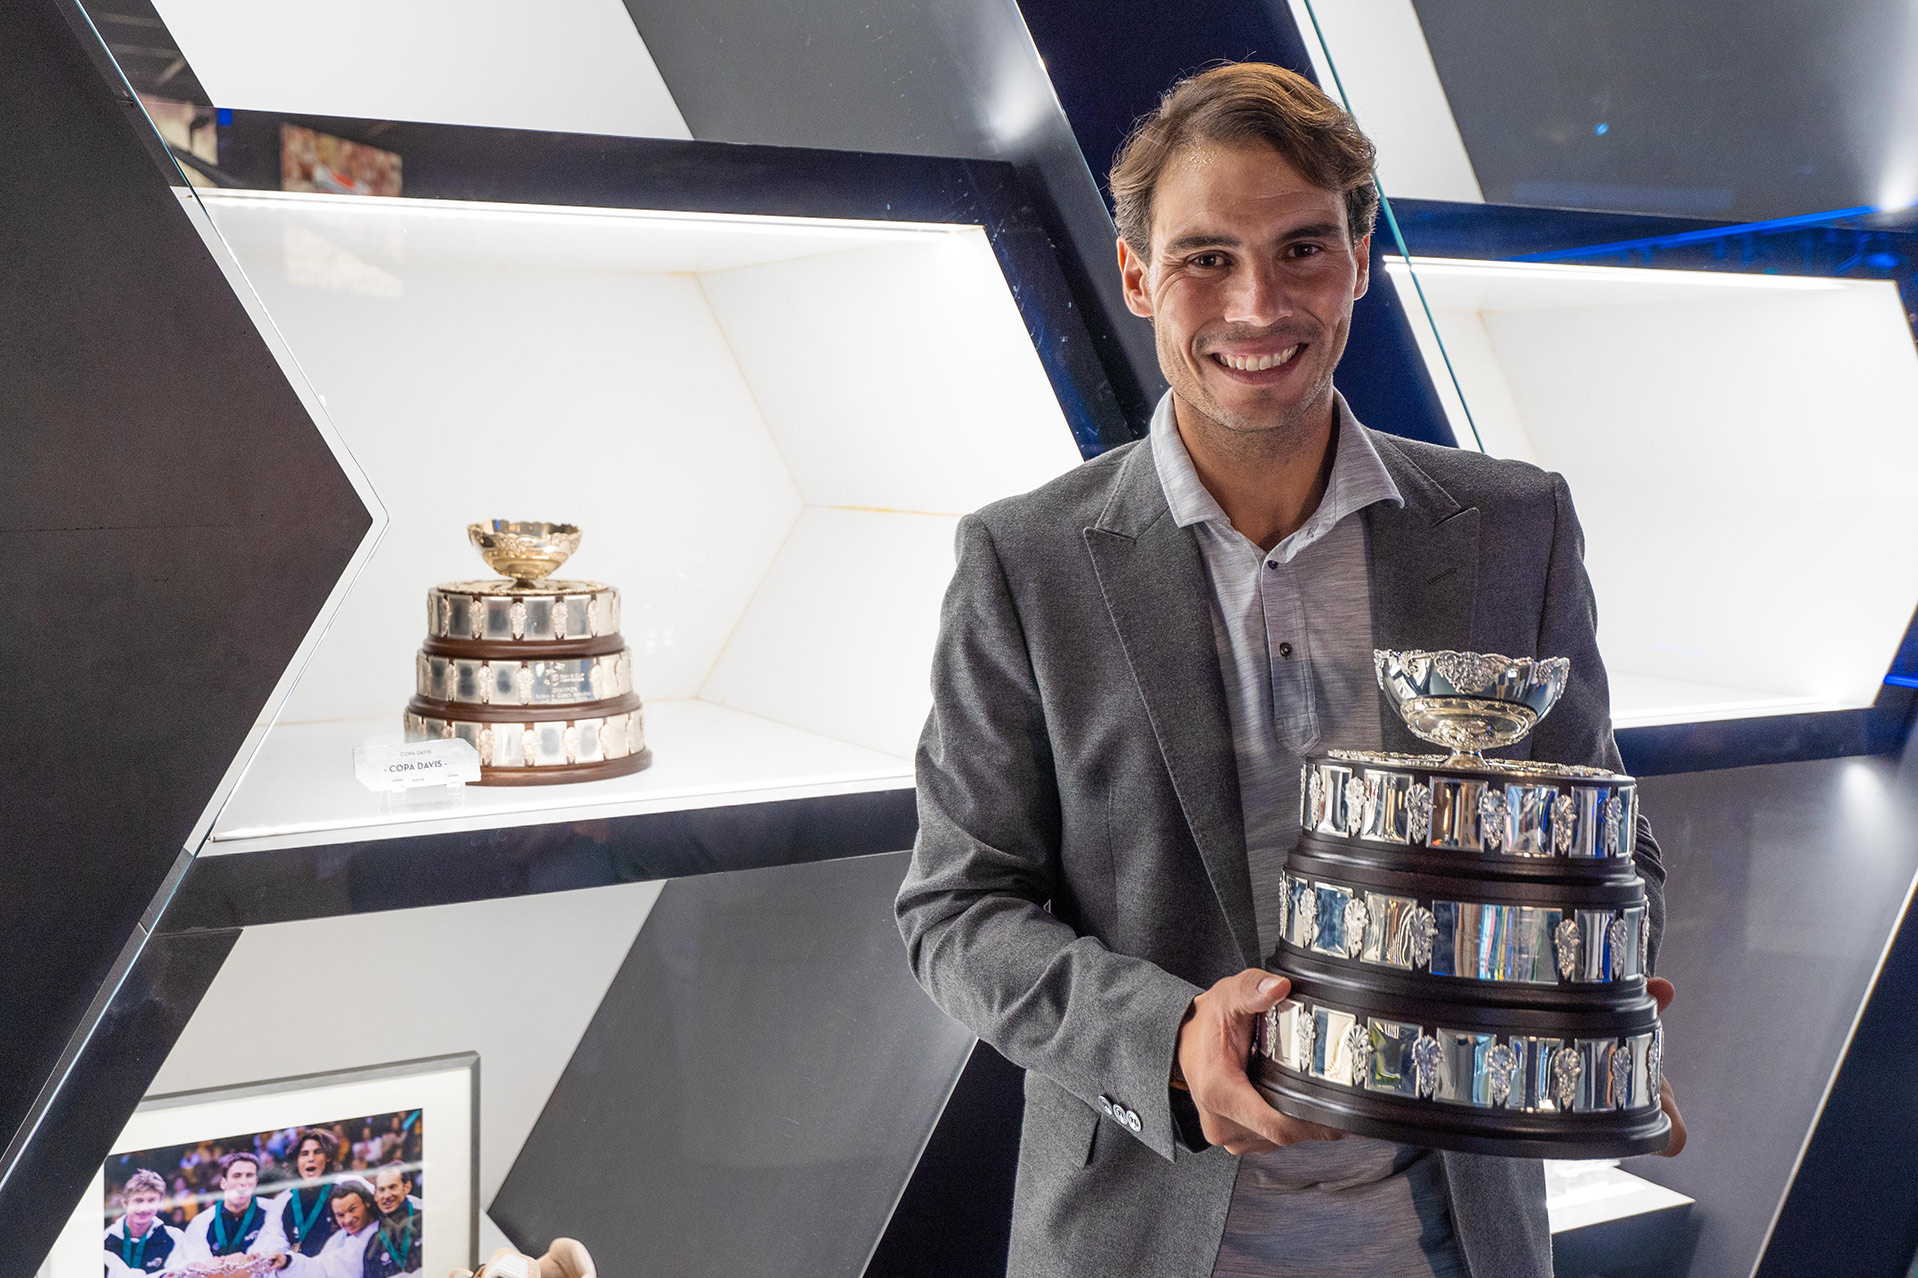 Imagen: https://images.neobookings.com/cms/rafanadalacademy.com/section/the-davis-cup-arrives-at-the-rafa-nadal-museum-xperience/pics/the-davis-cup-arrives-at-the-rafa-nadal-museum-xperience-g4lr4vzw98.jpeg